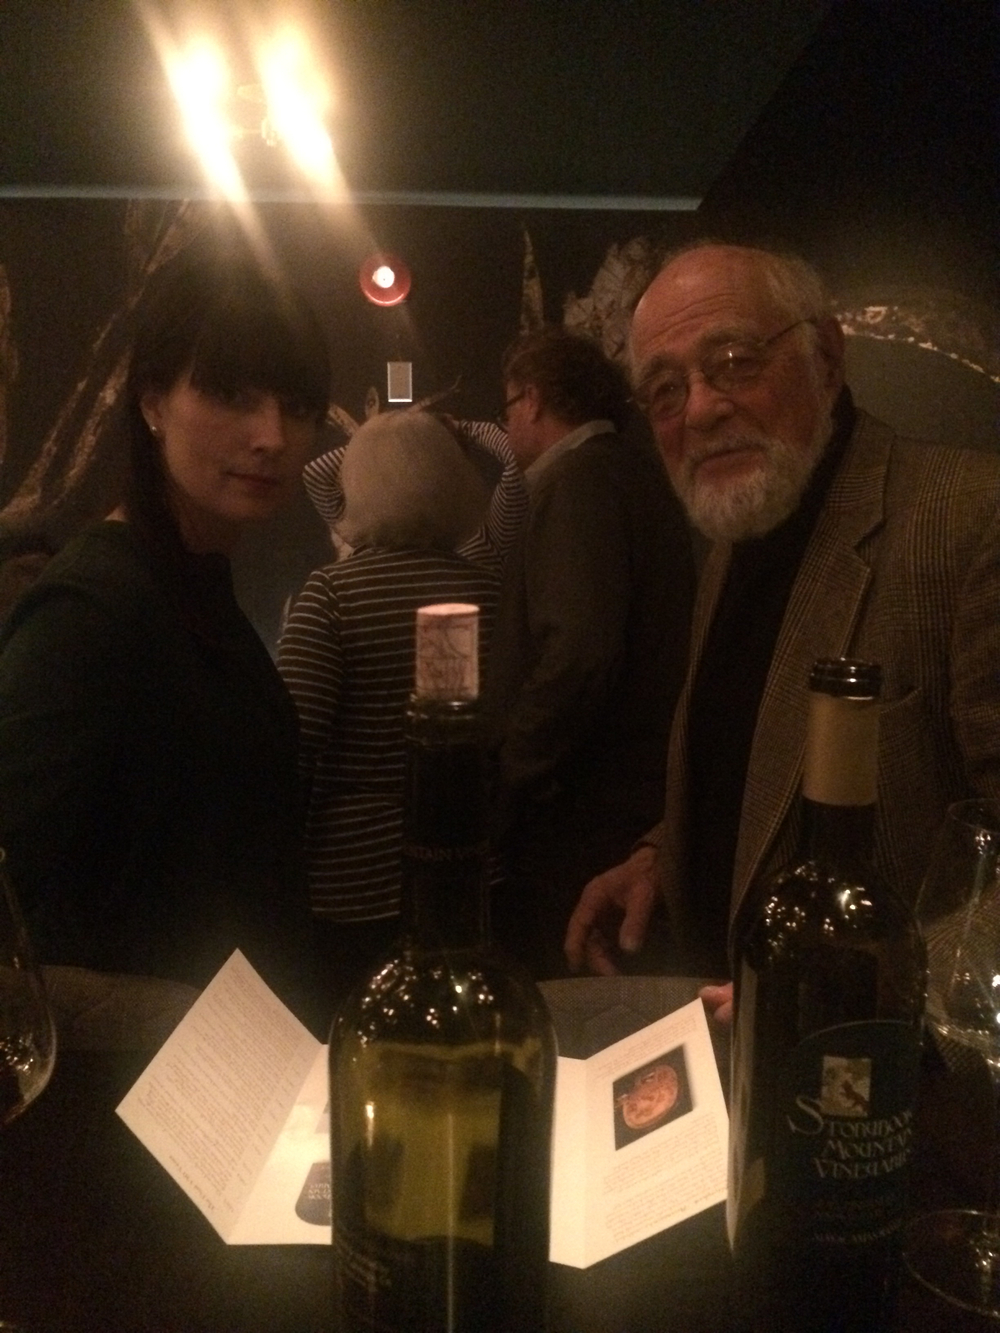 Amanda Bradley (Owner/GM - Alo Restaurant) and Jerry Seps of Storybook Mountain Vineyards